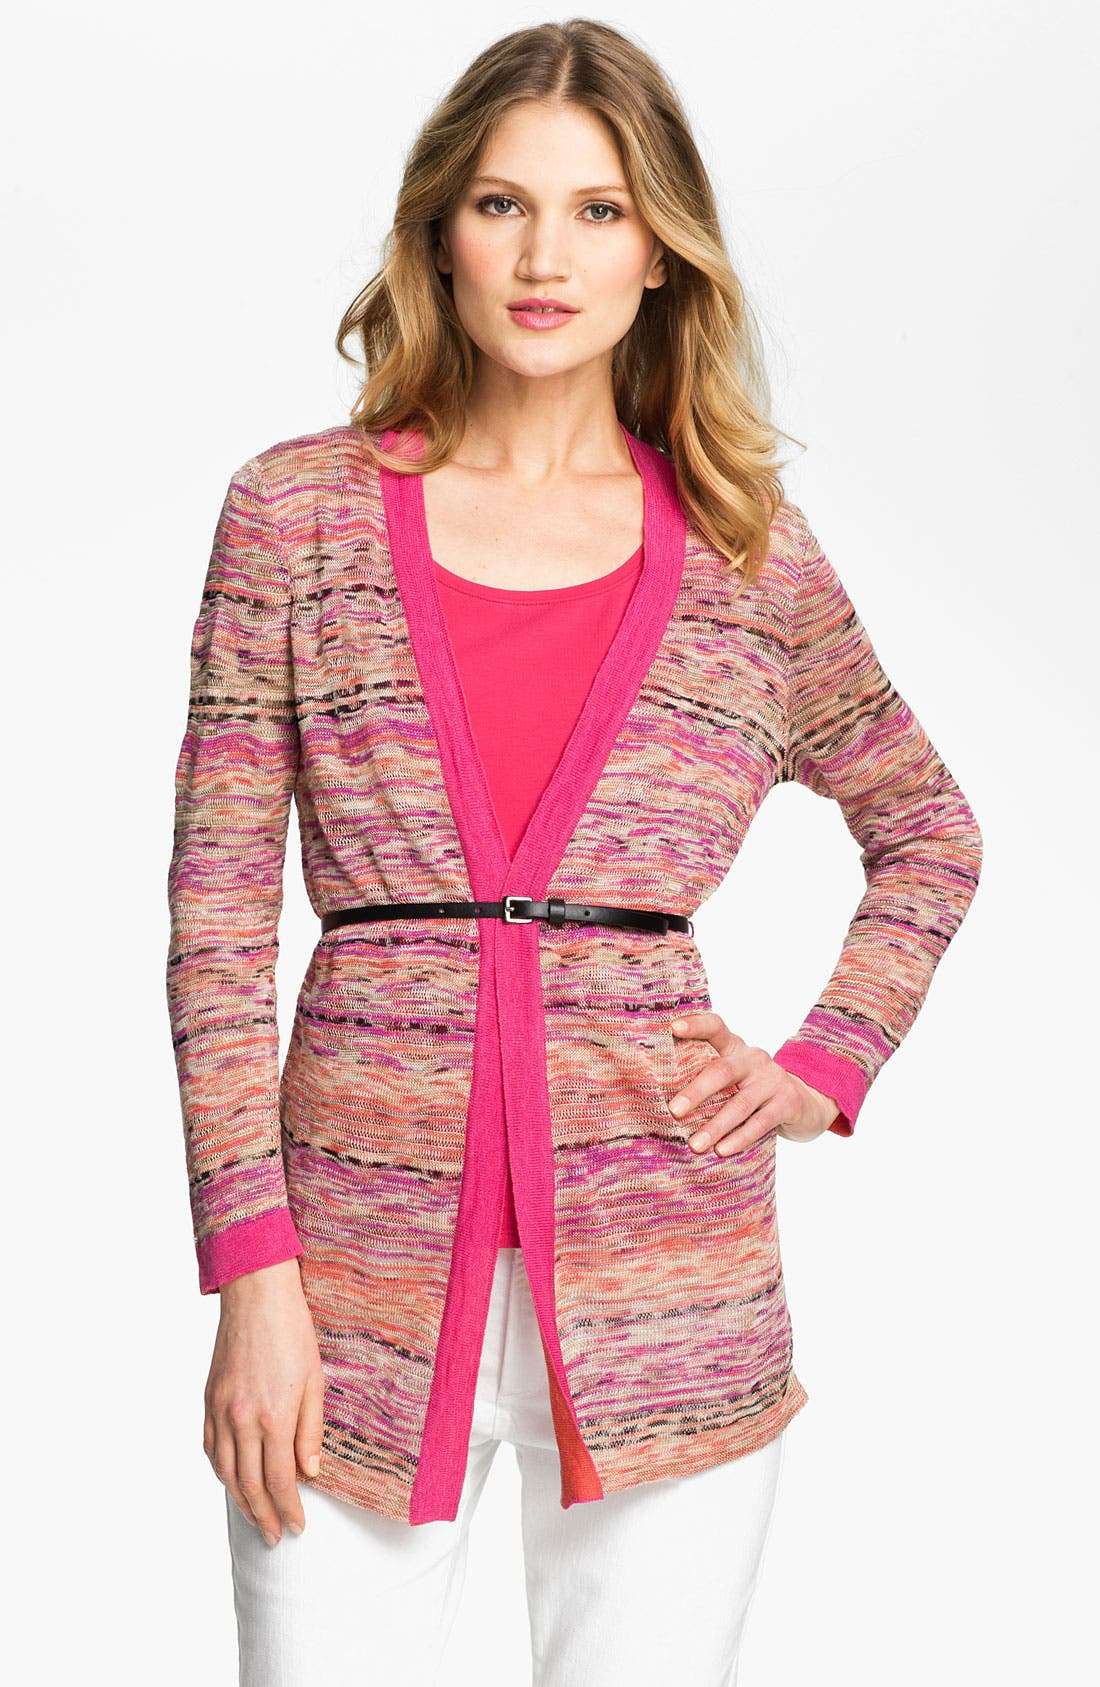 Alternate Image 1 Selected - Nic + Zoe 'Heat Mix' Belted Cardigan (Petite)